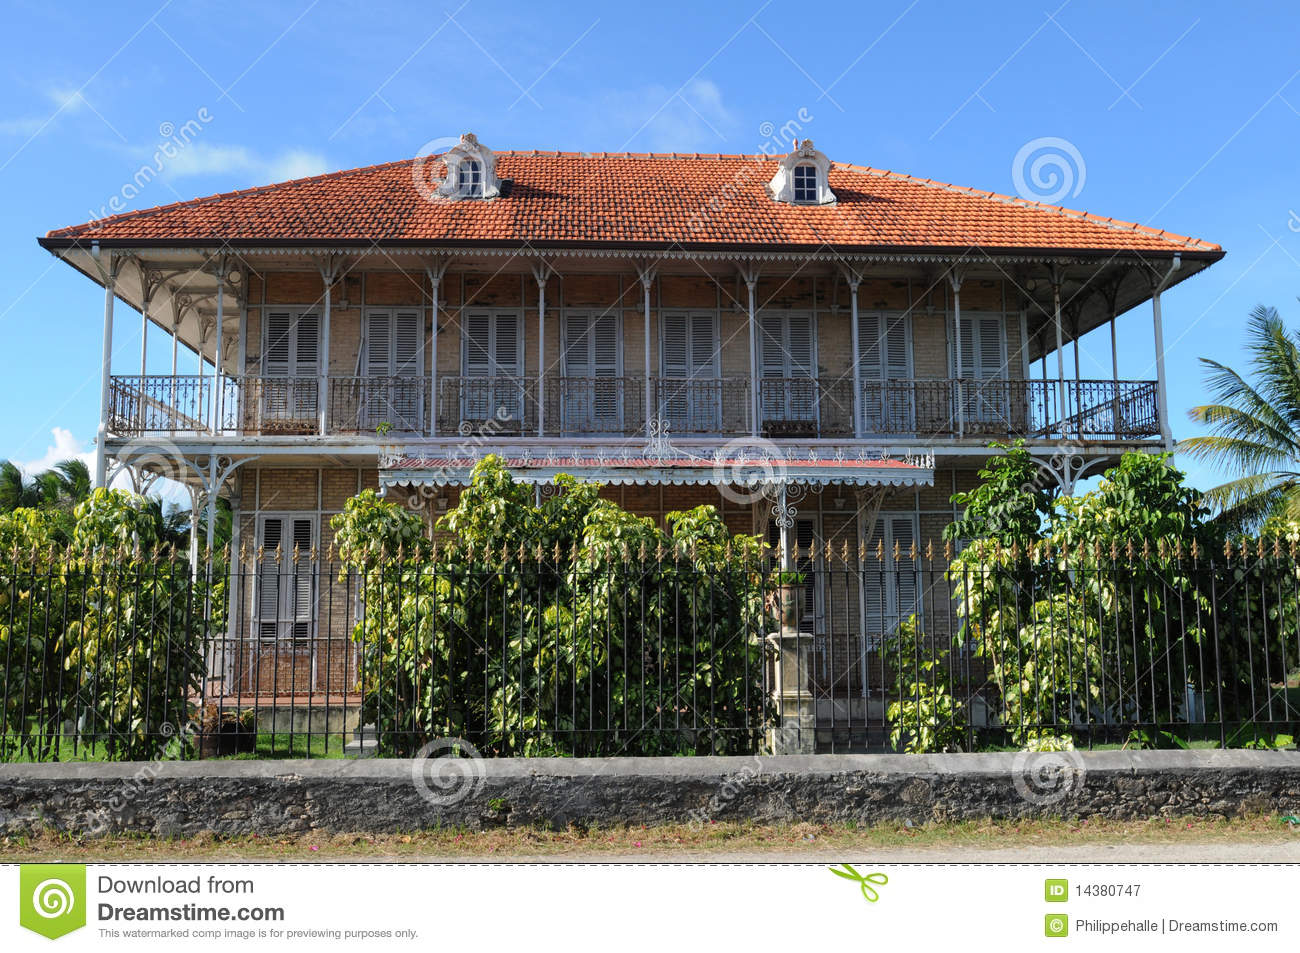 Maison coloniale photographie stock libre de droits for Achat de maison en guadeloupe